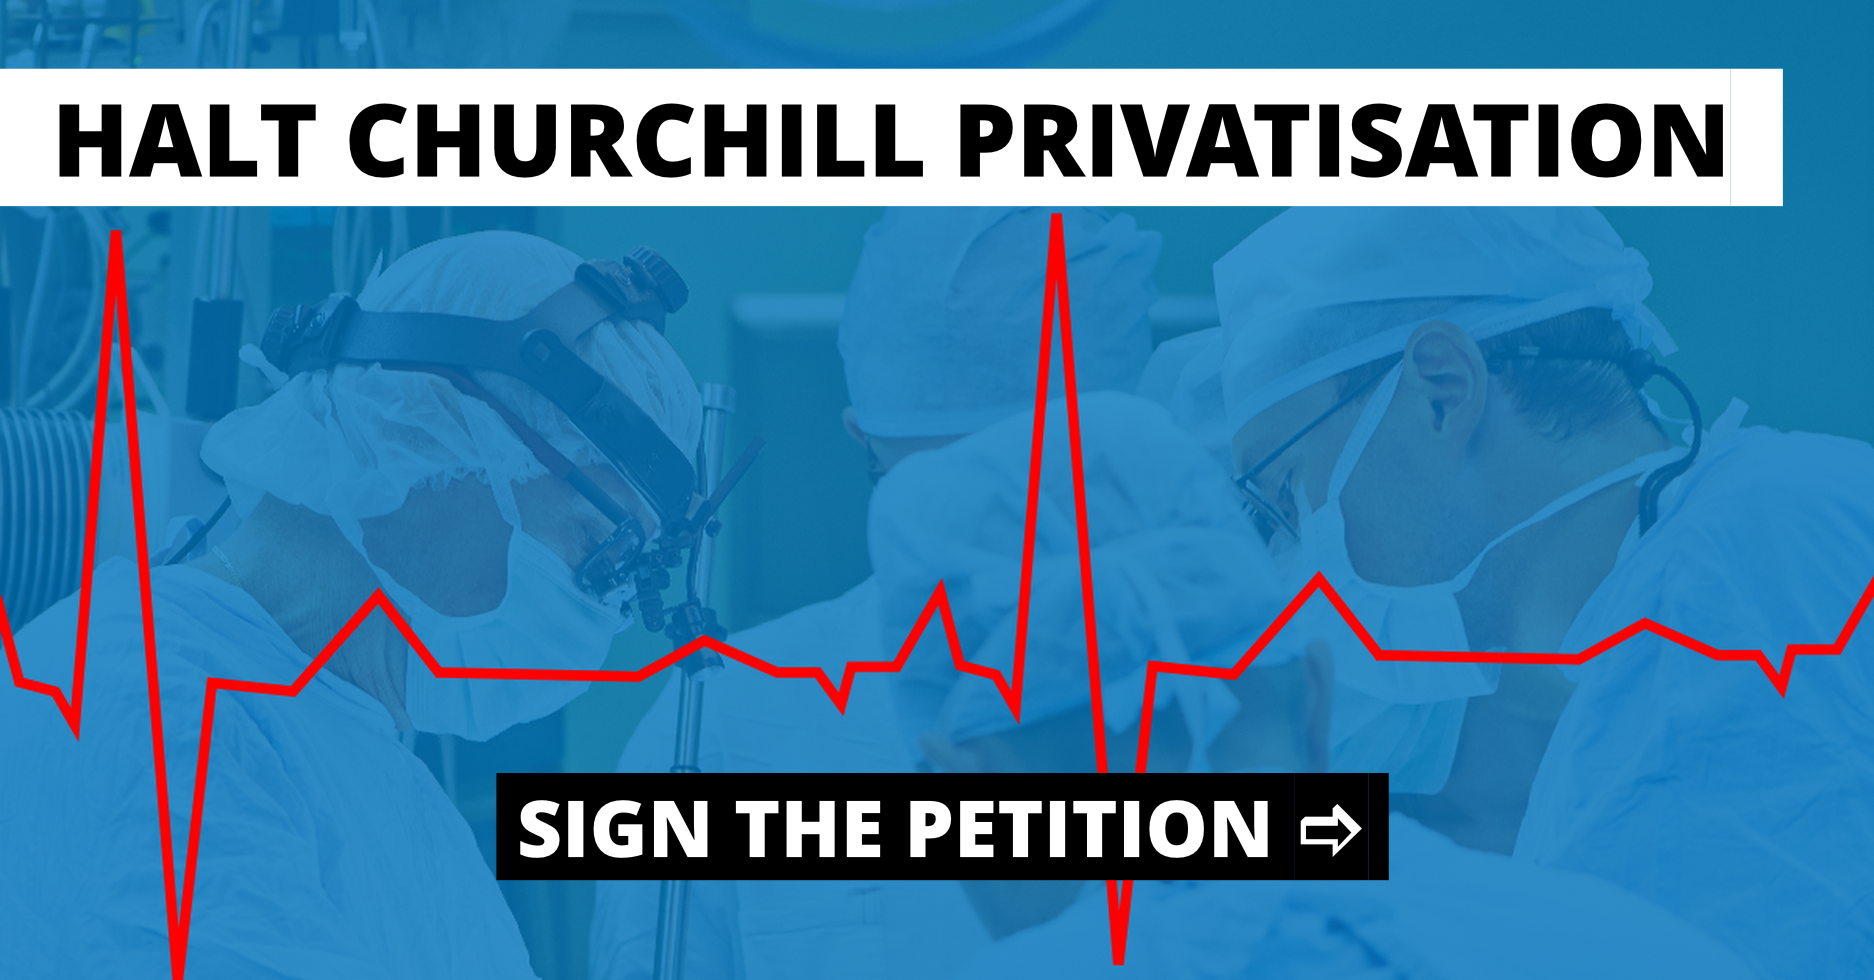 Halt the Churchill Hospital Privatisation 🚑